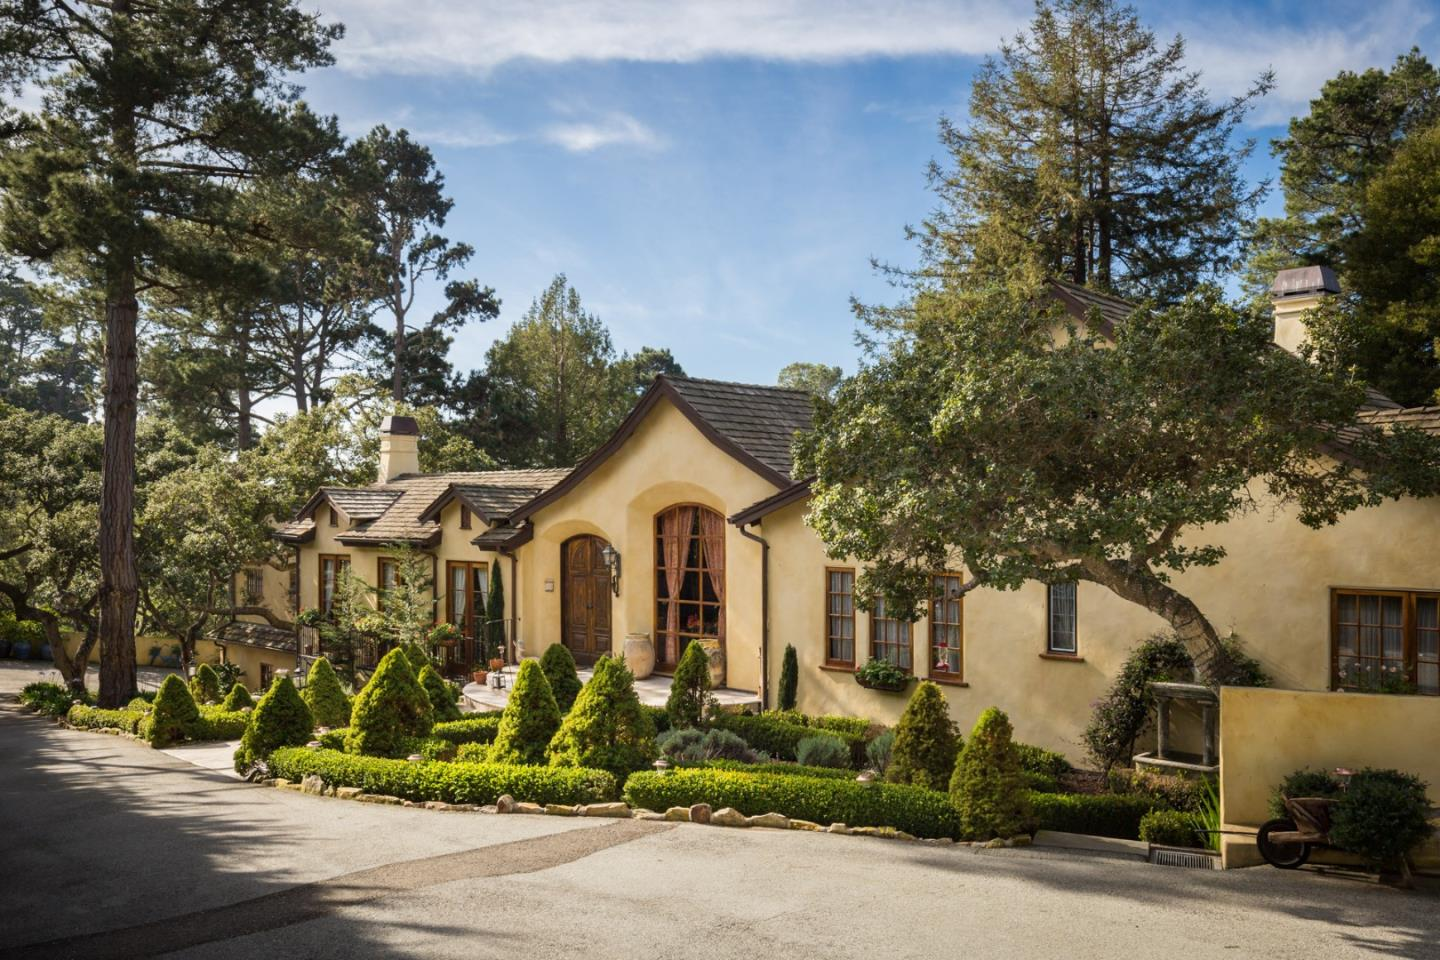 Property for sale at 25434 Hatton RD, Carmel,  CA 93923